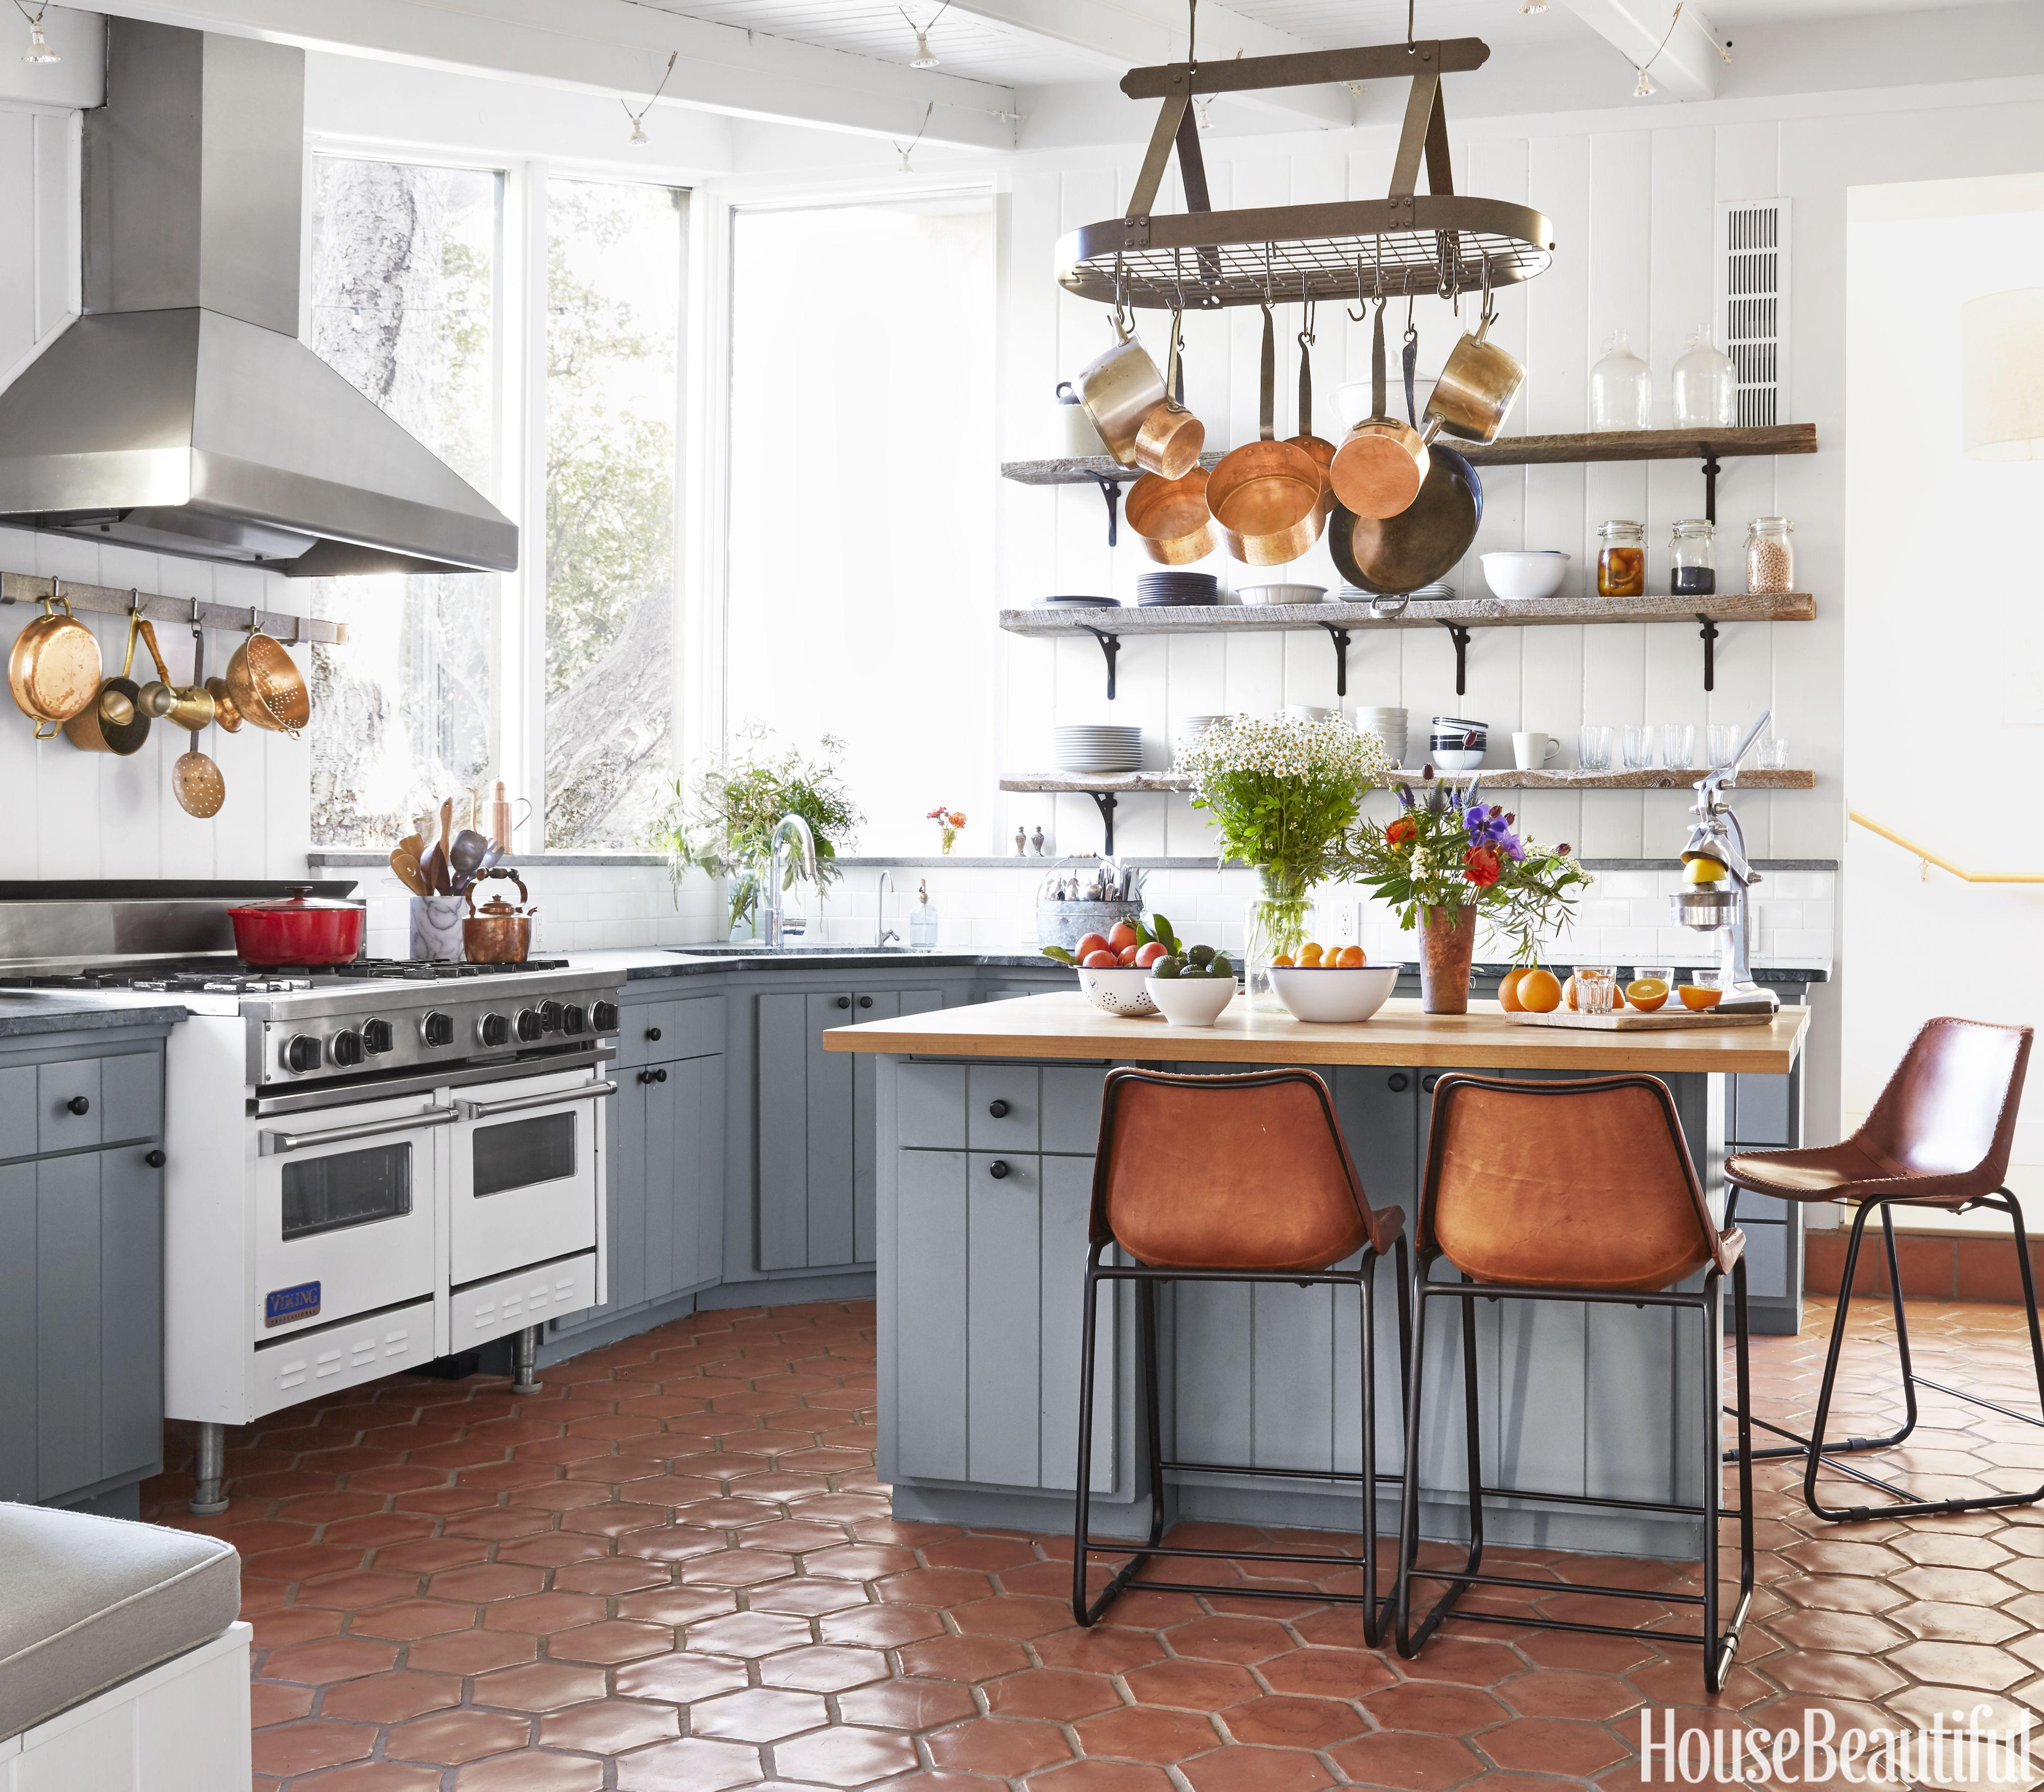 Cabinets Design Ideas And Pictures: These Insanely Gorgeous Kitchens Will Have You Planning A